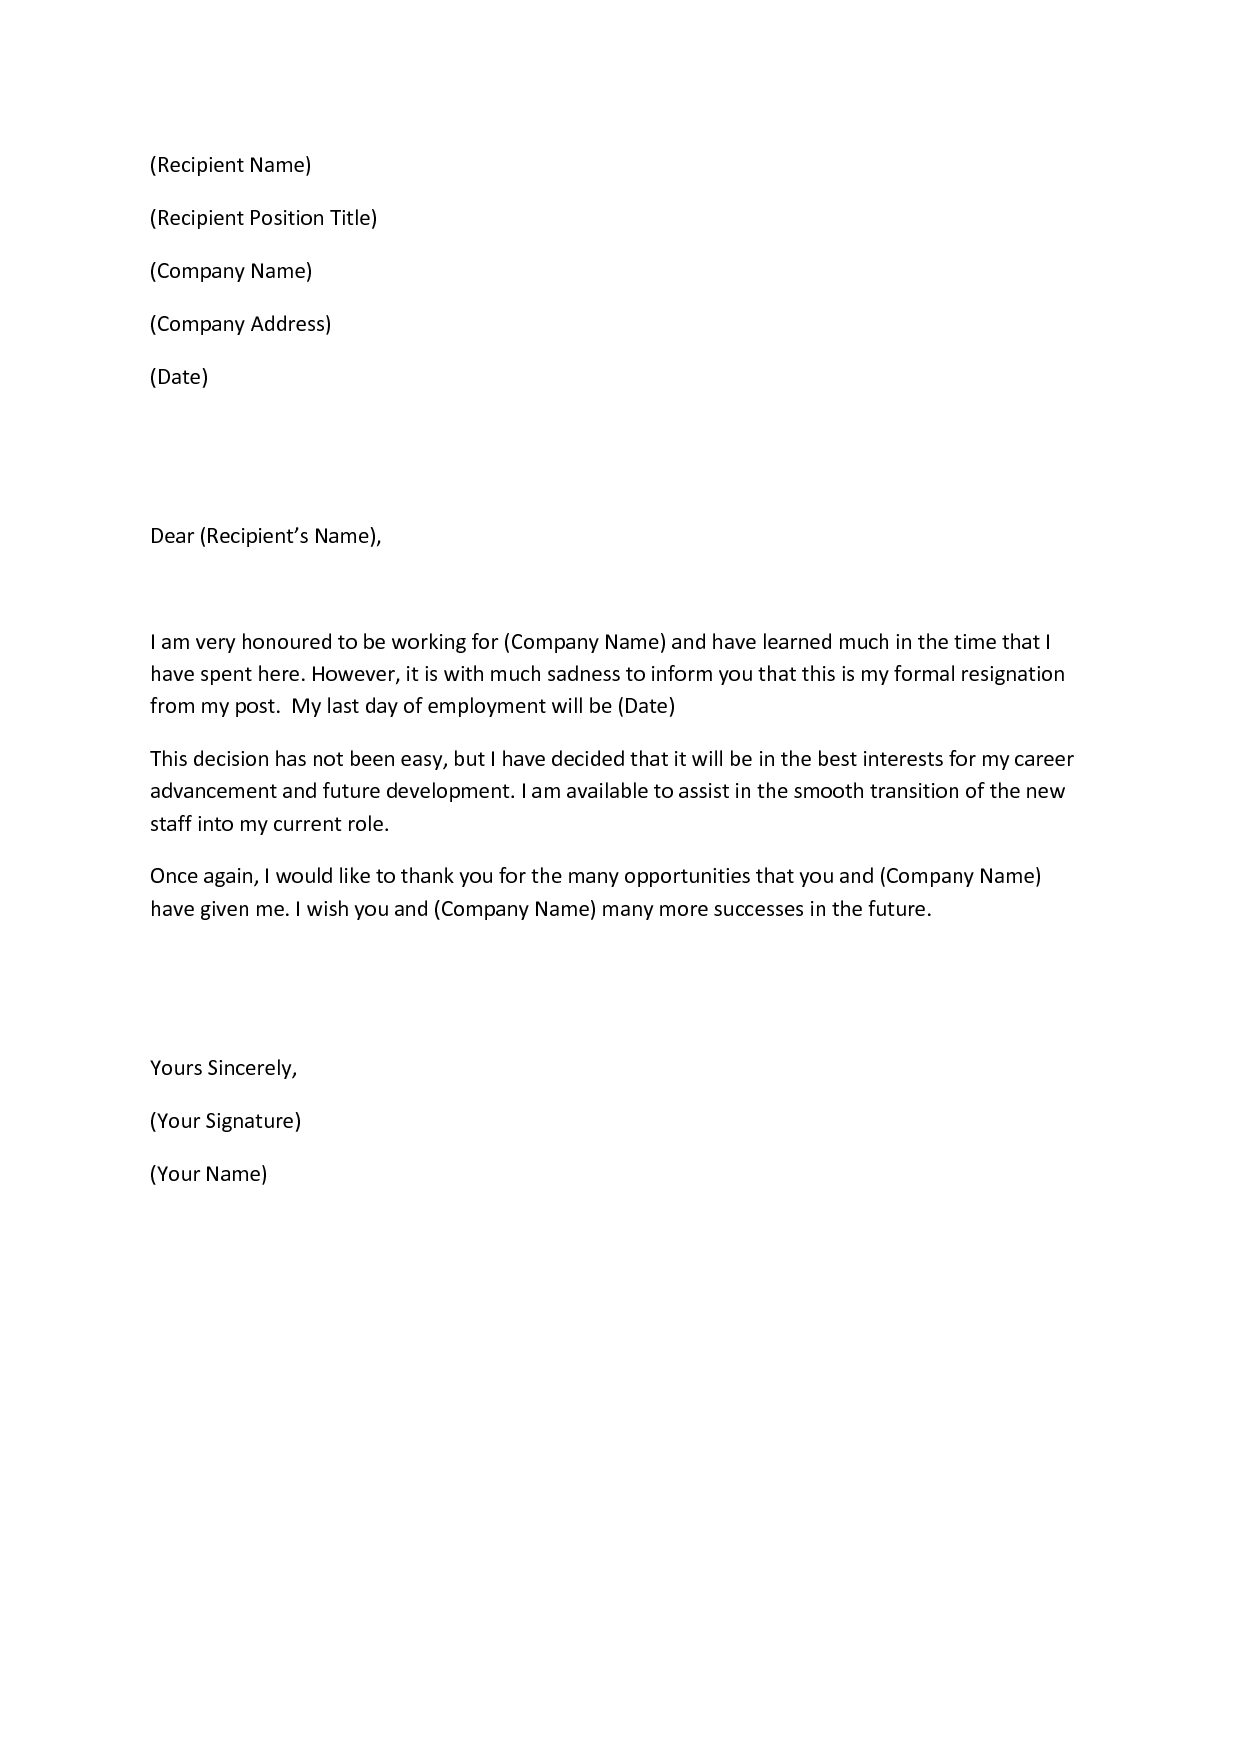 Giving notice to employer letter resignation etiquette tips and ideas about resignation letter sample of 1000 ideas about resignation letter sample of resignation letter resignation spiritdancerdesigns Choice Image